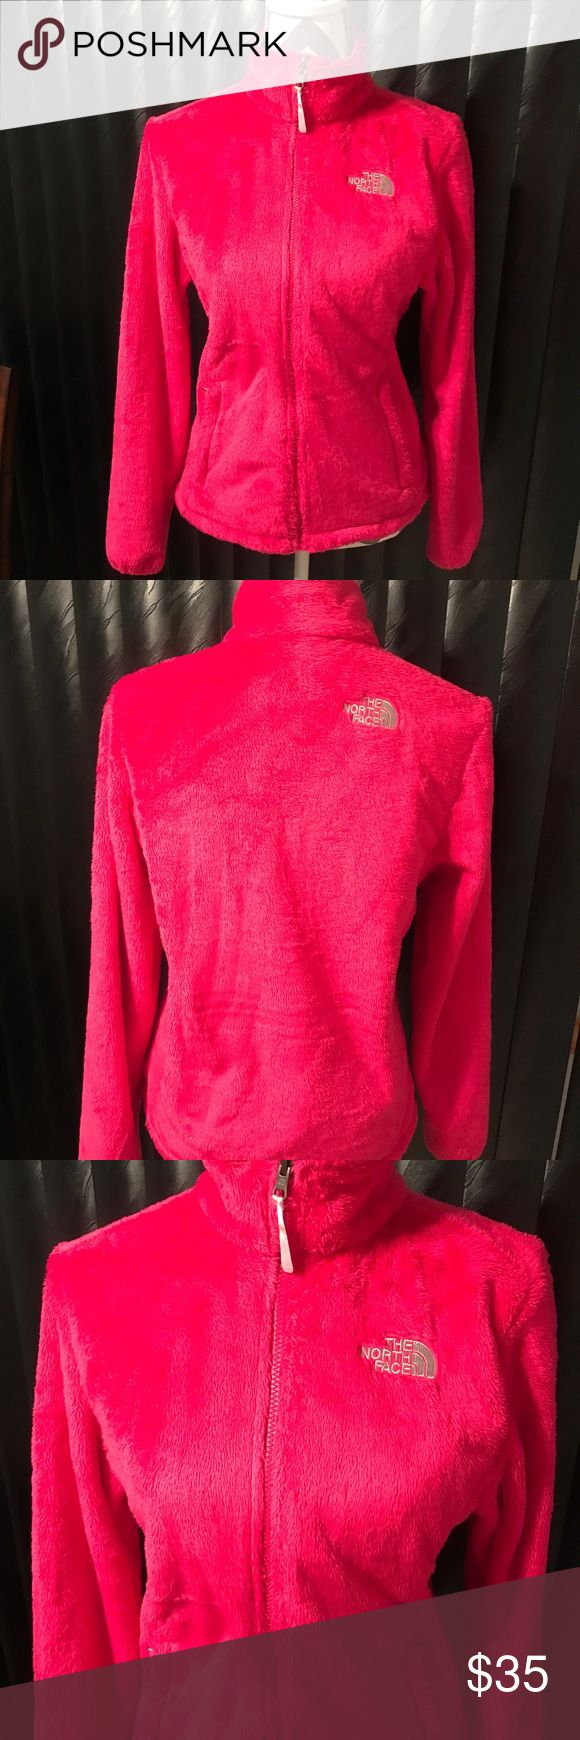 🌷The North Face Pink Osito Jacket🌷 Pink North face Osito fleece jacket. In excellent condition. Great for fall or winer! 🛍Bundle 2 + items and receive a discount and pay only one shipping fee! 🛍 The North Face Jackets & Coats